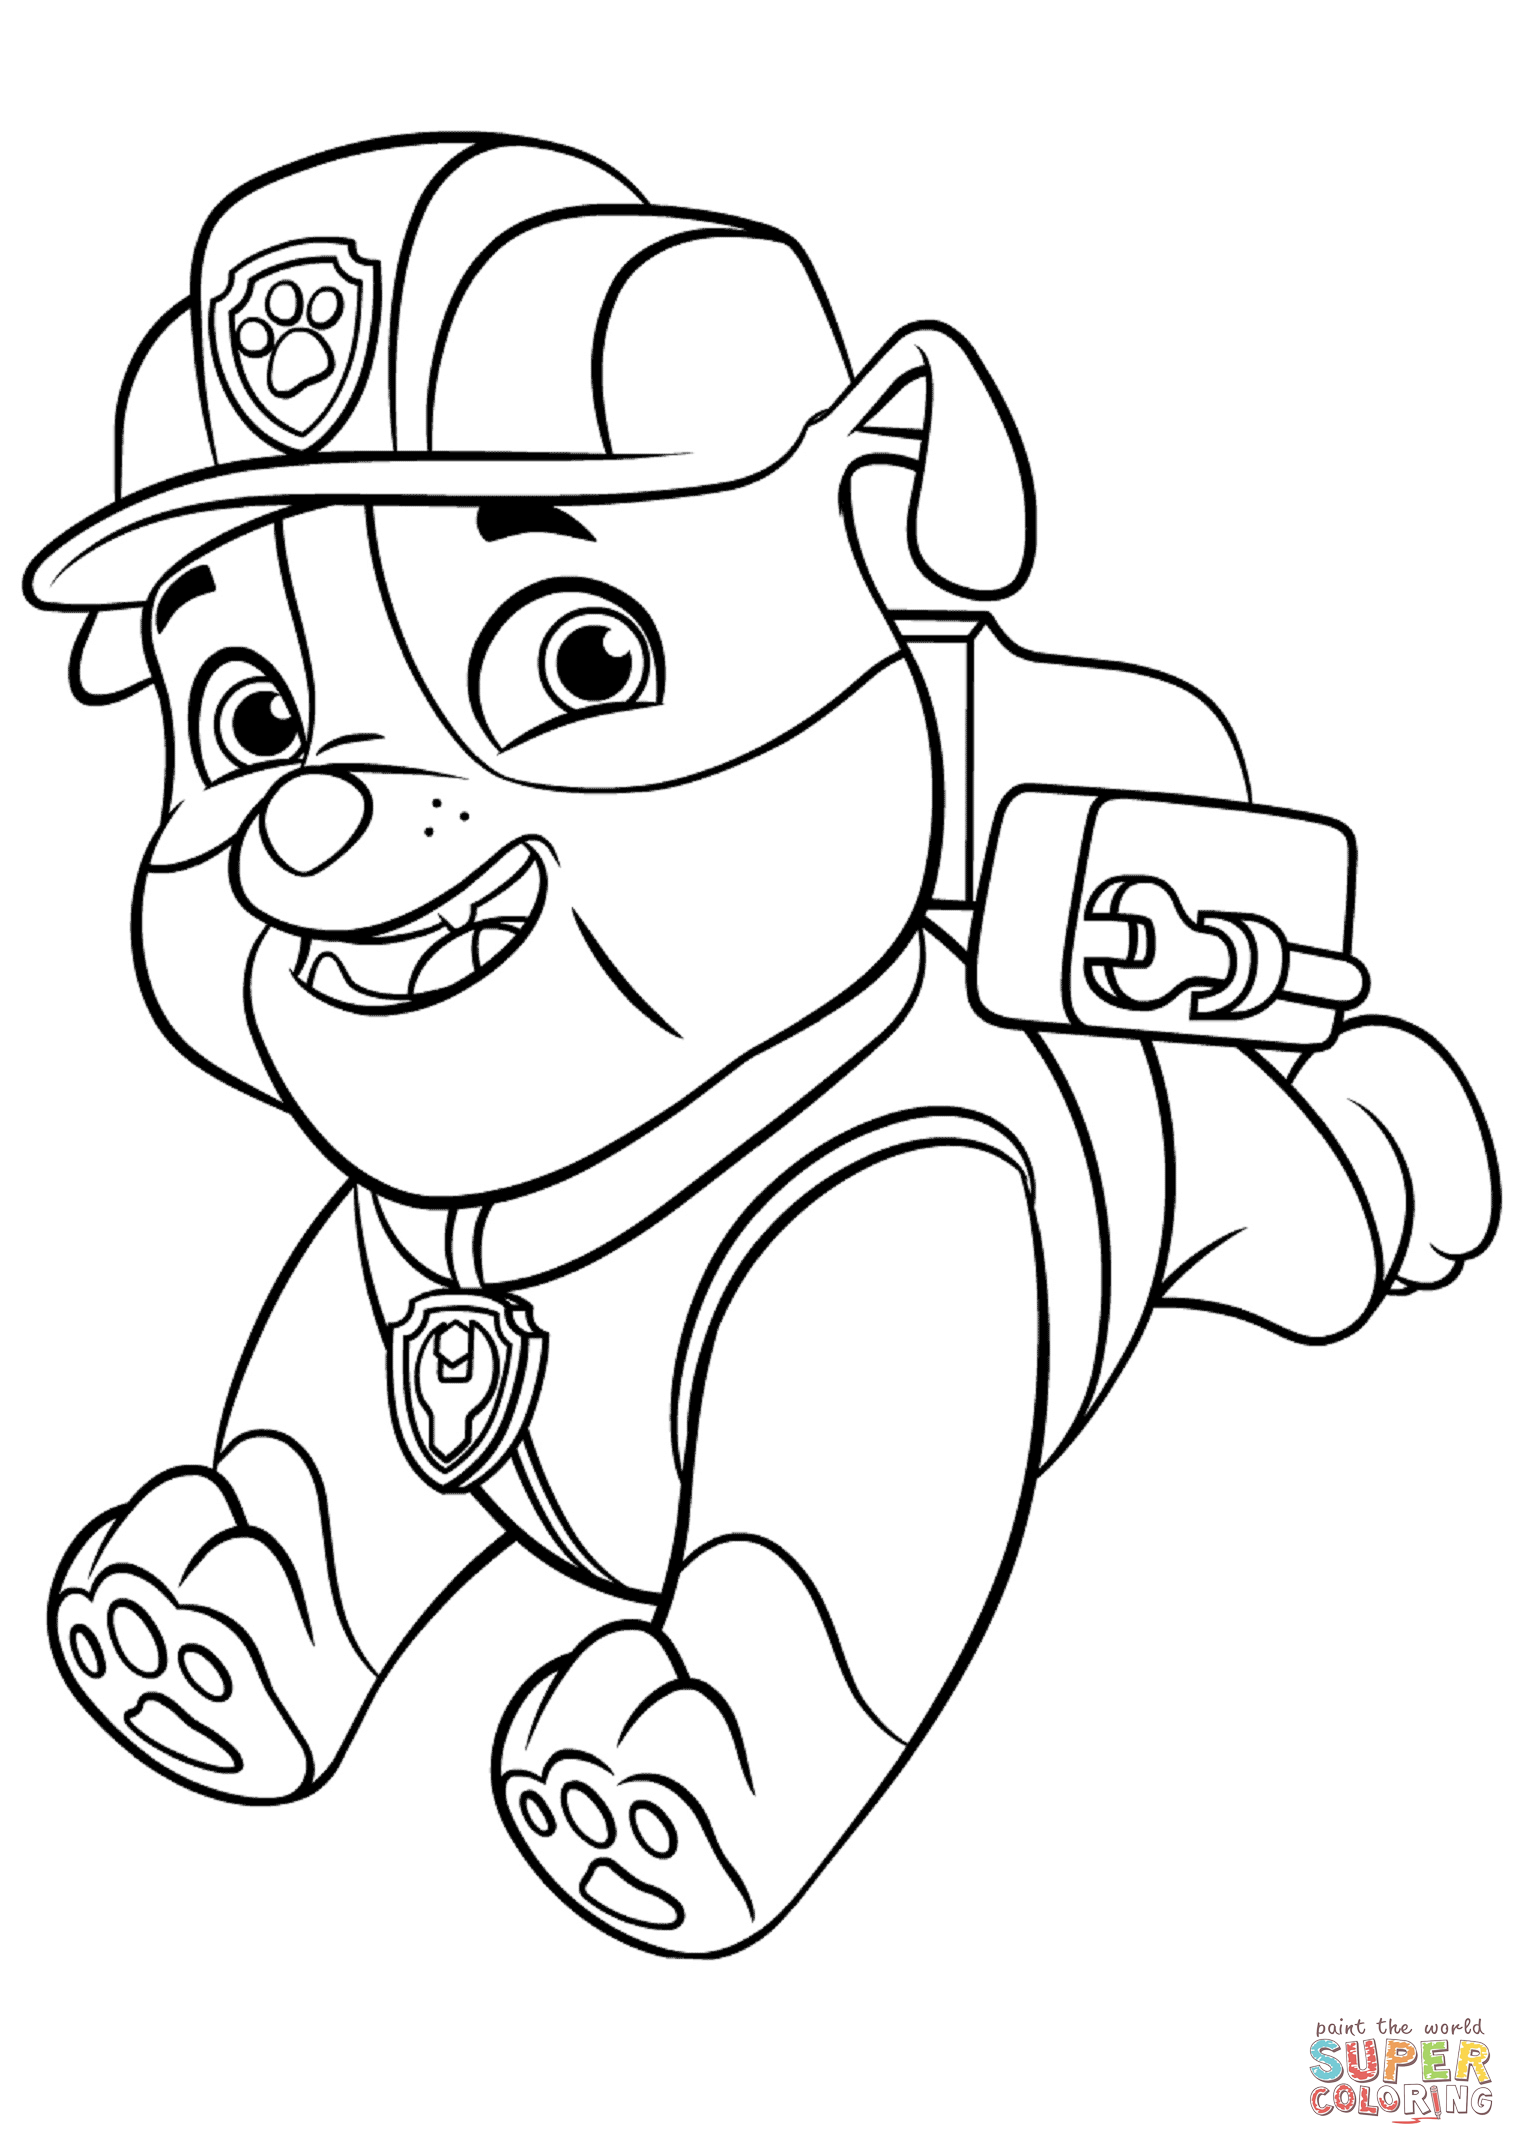 Paw Patrol Rubble With Backpack Super Coloring Colouring In 2020 Paw Patrol Coloring Pages Paw Patrol Coloring Paw Patrol Cartoon